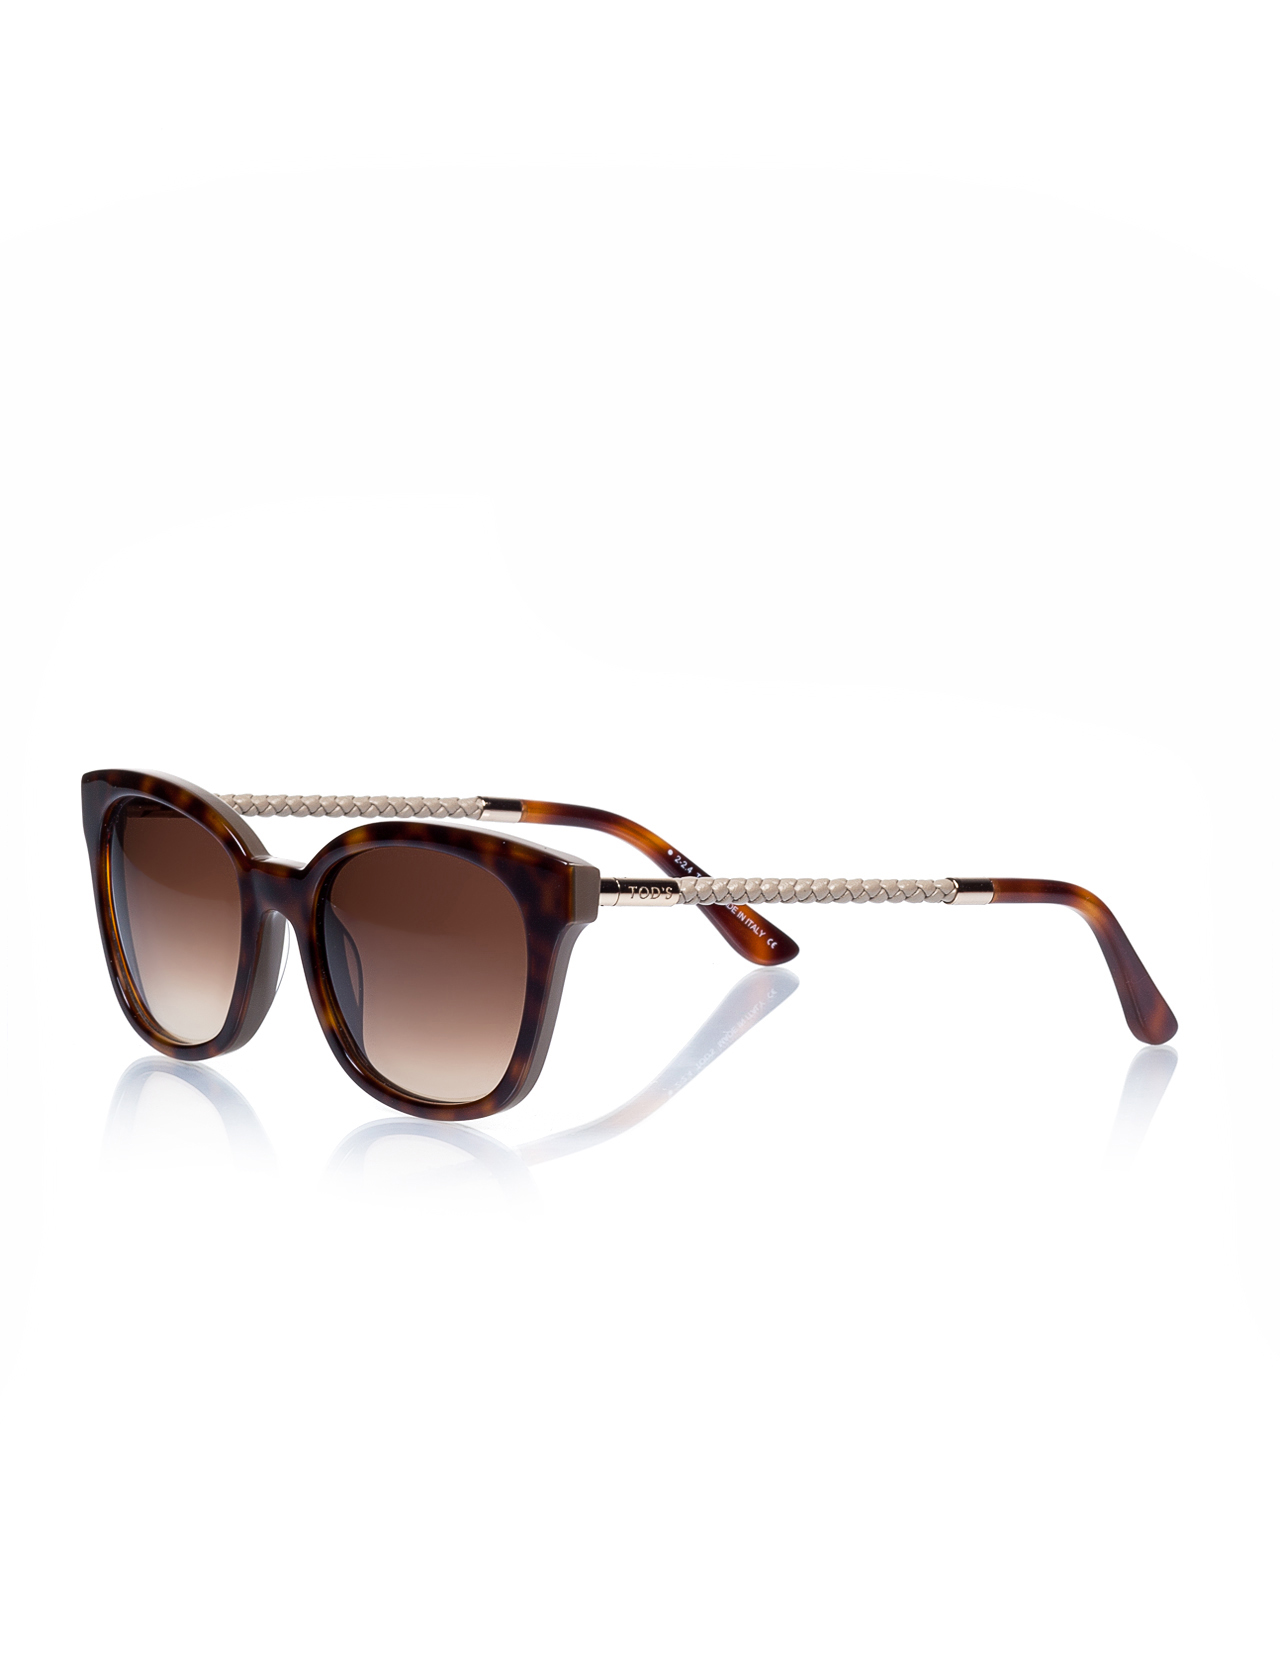 Women's sunglasses to 0151 59f bone Brown organic square square 52-19-140 tods